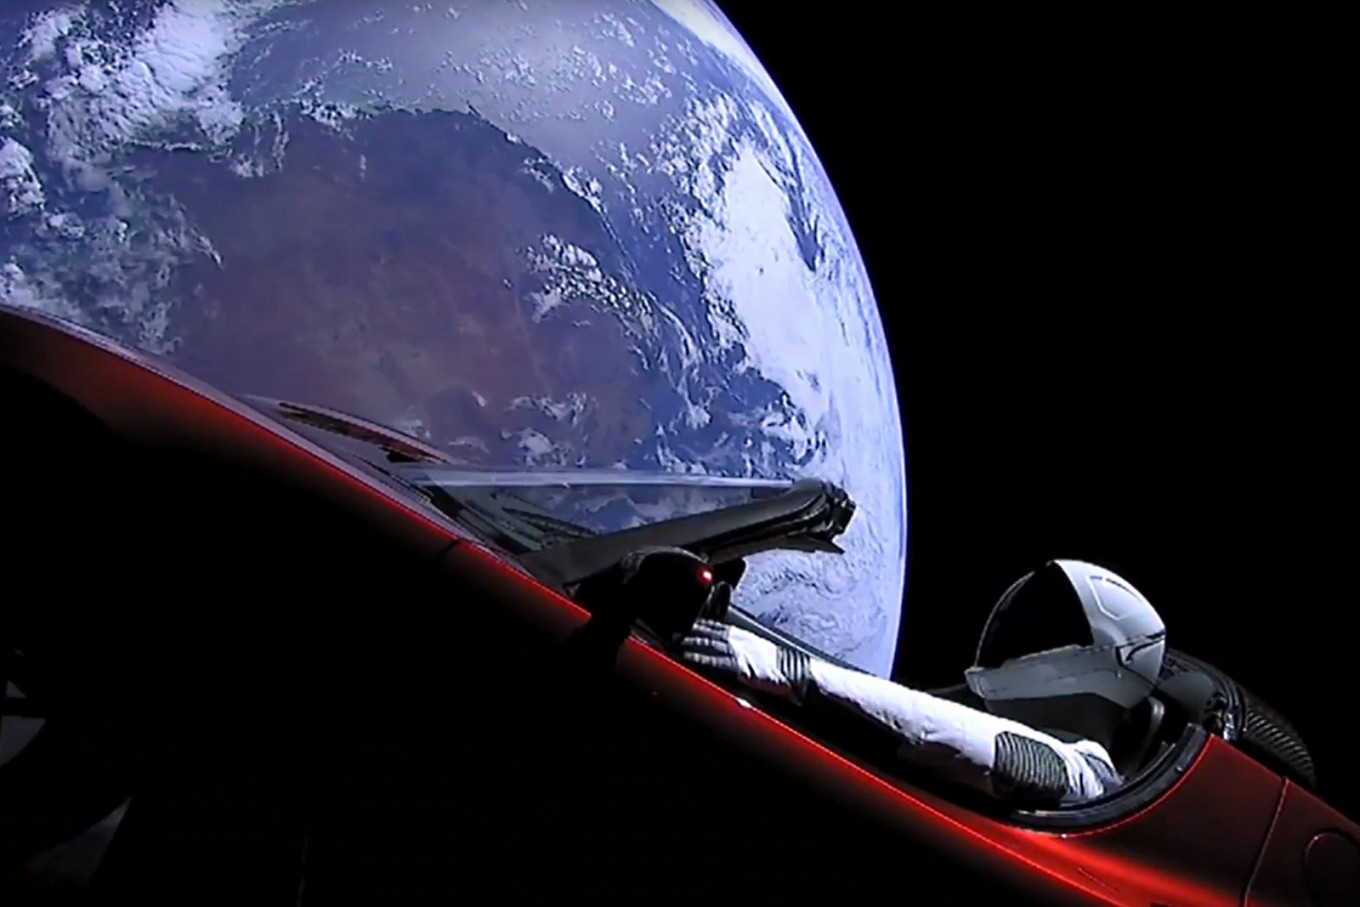 spacex beams cool video of tesla in space science tech the jakarta post. Black Bedroom Furniture Sets. Home Design Ideas